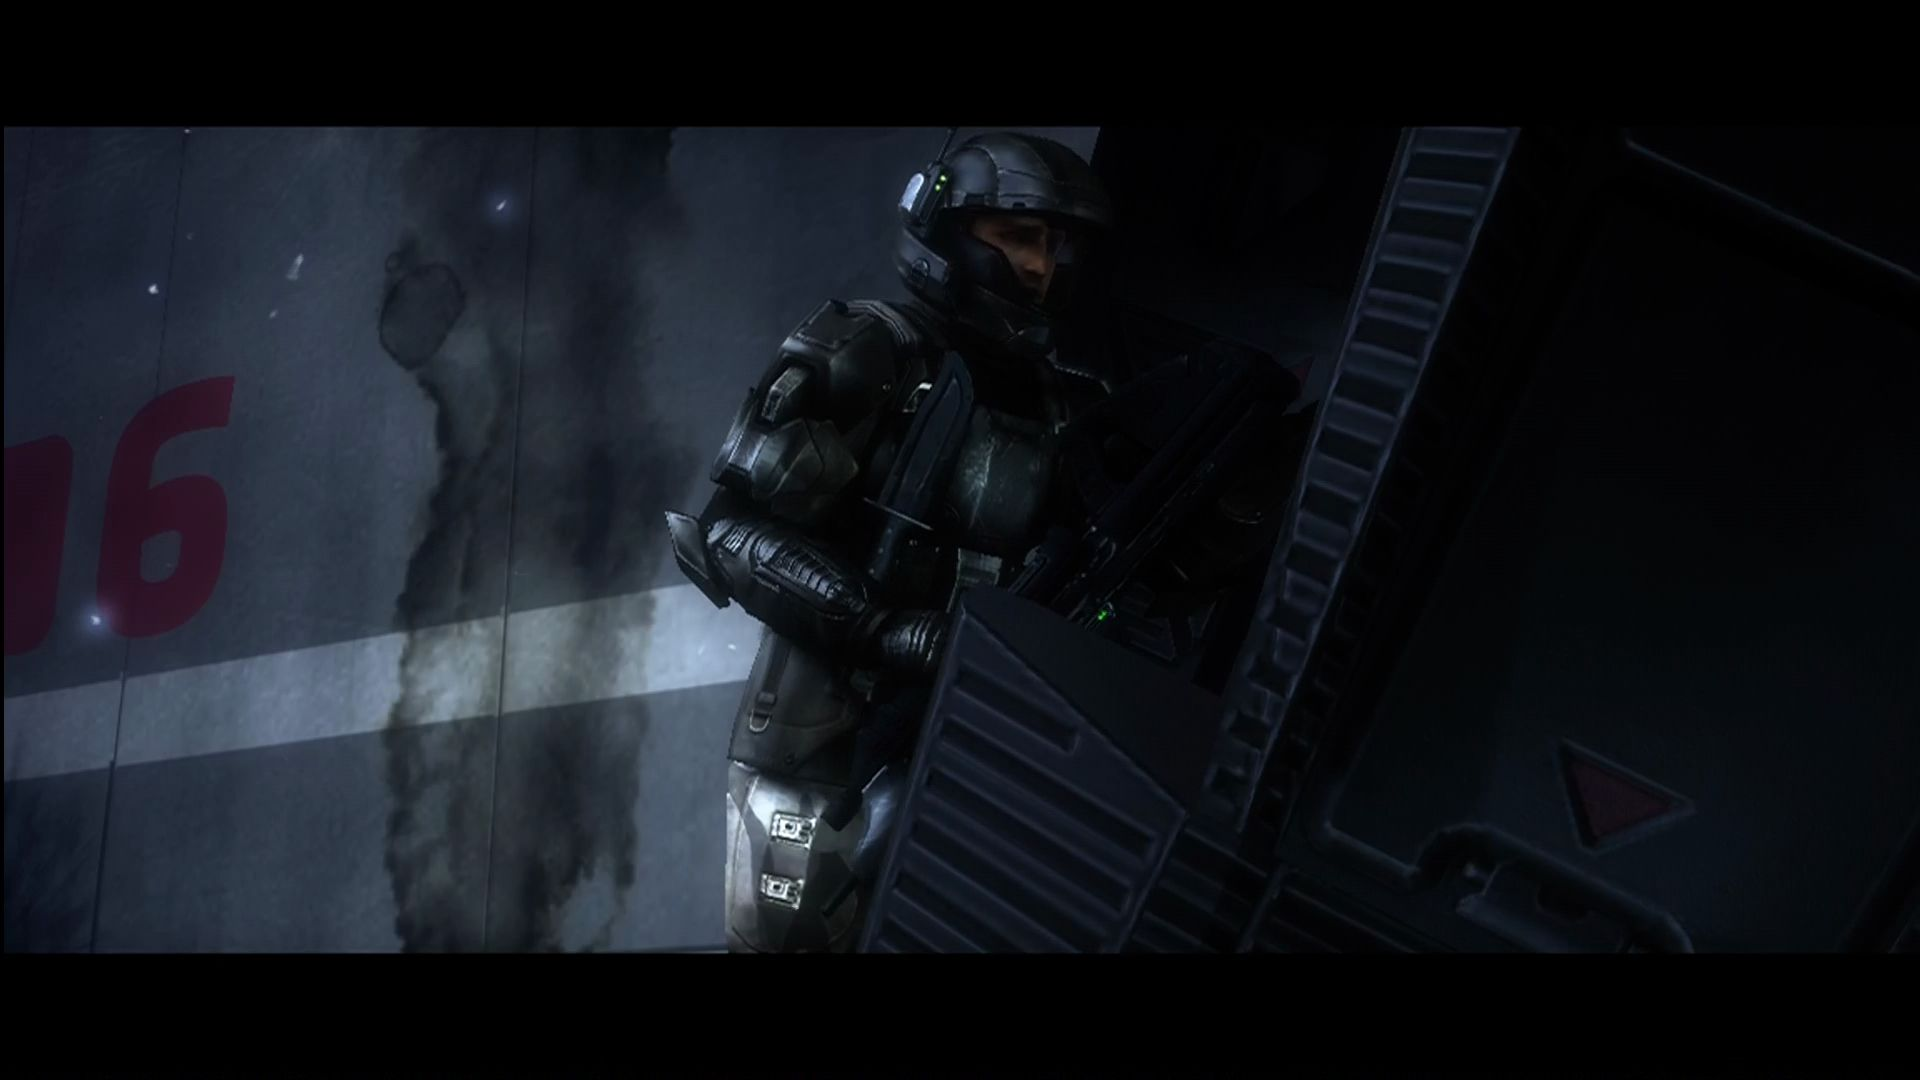 Halo 3: ODST Xbox 360 Gearing up to regroup with the squad.